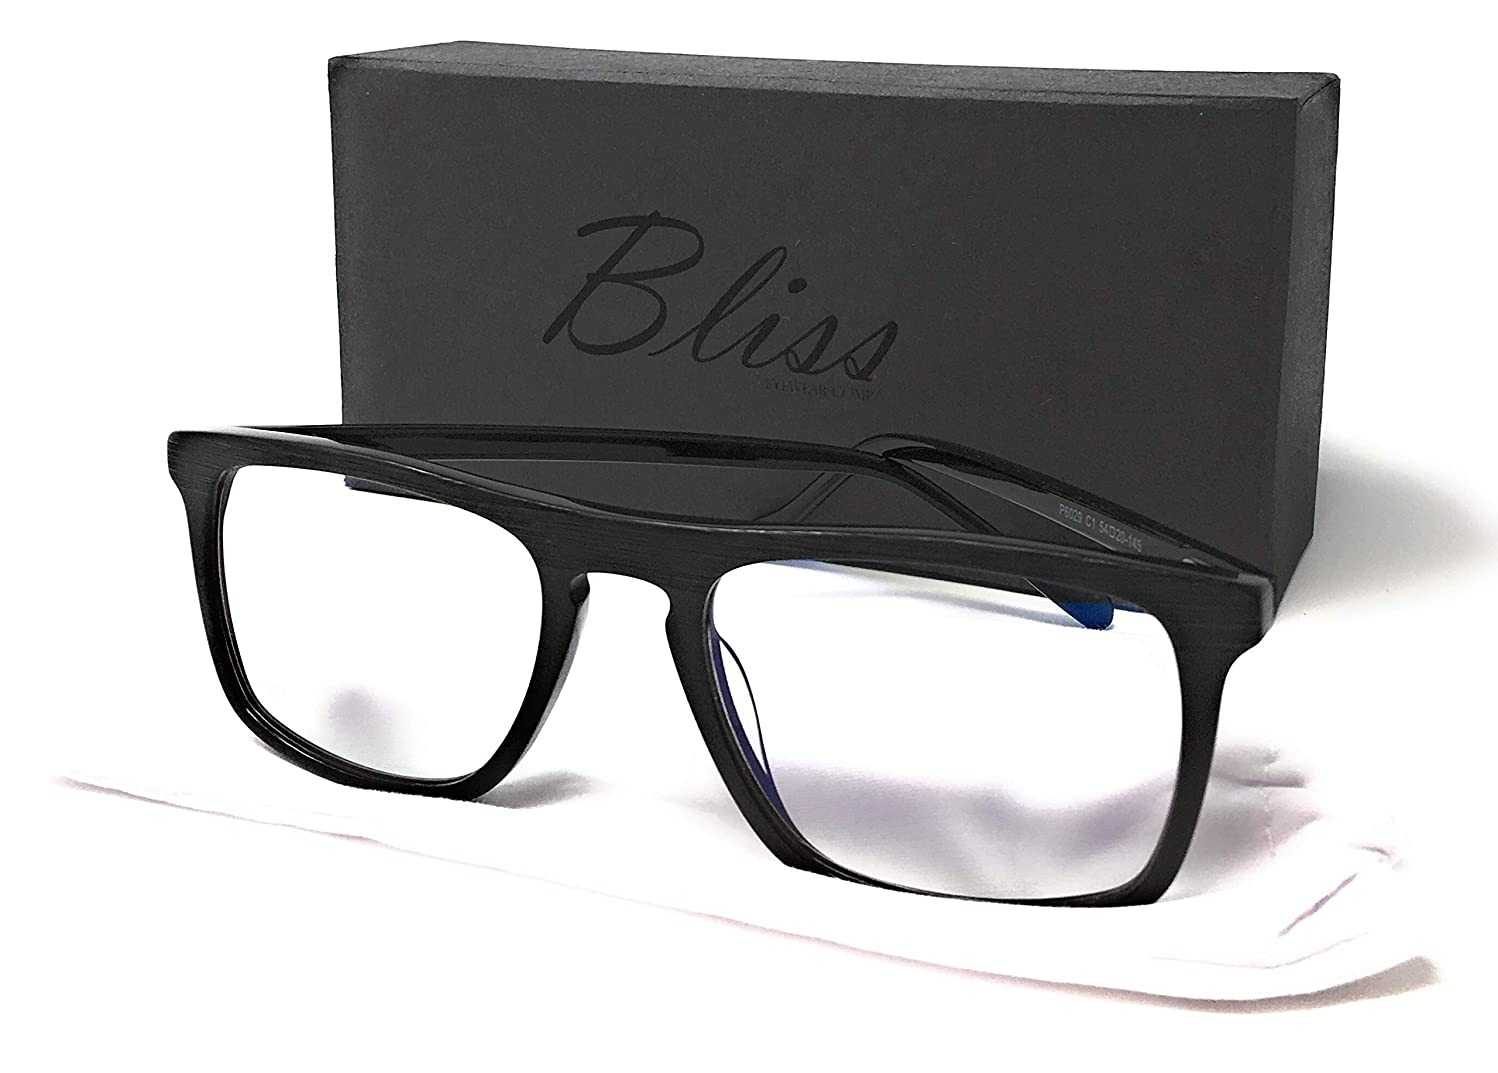 Computer Blue Light Blocking Glasses for Anti Eyestrain (for use with Computer, Gaming, TV, Tablet, and Phone) by Bliss Eyewear Comp.